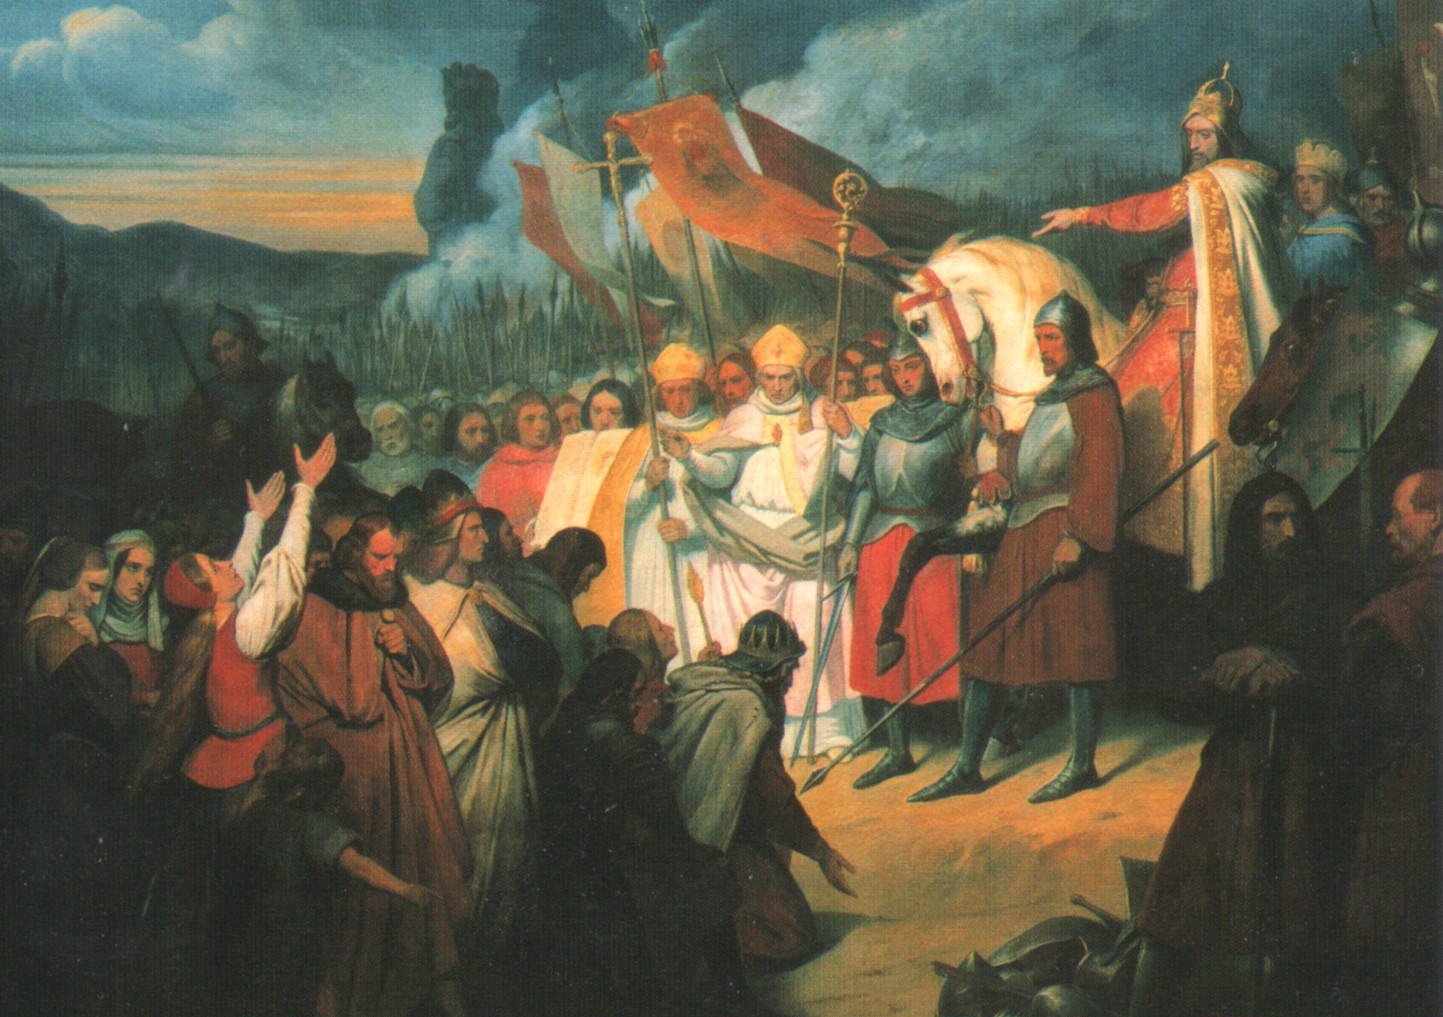 New subjects submit to the rule of Charlemagne and the Holy Roman Empire